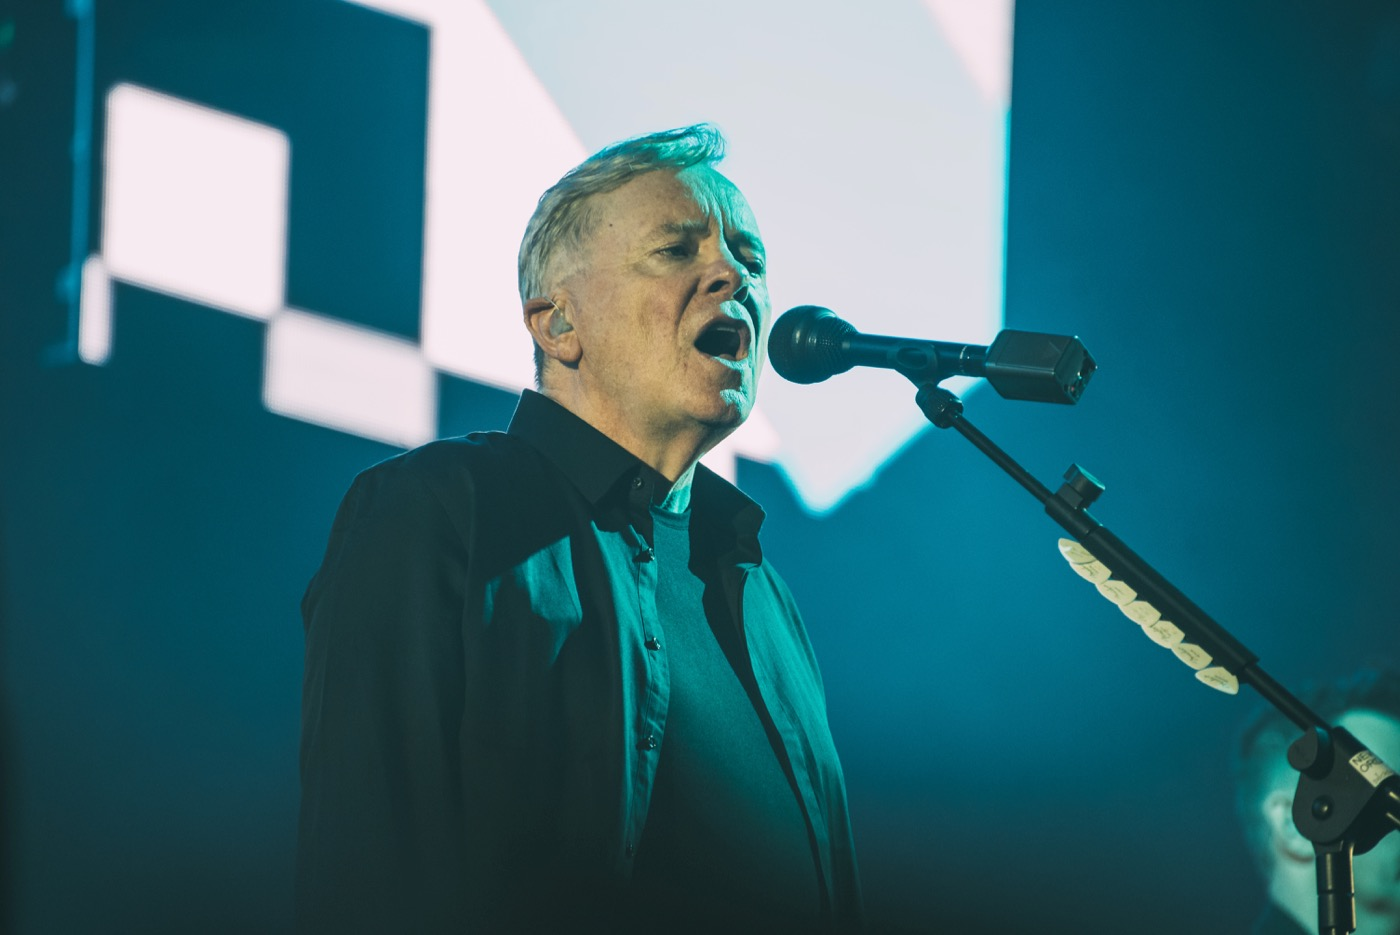 New Order @ Music Tastes Good 9/29/18. Photo by Lisa Mony for Music Tastes Good. Used with permission.